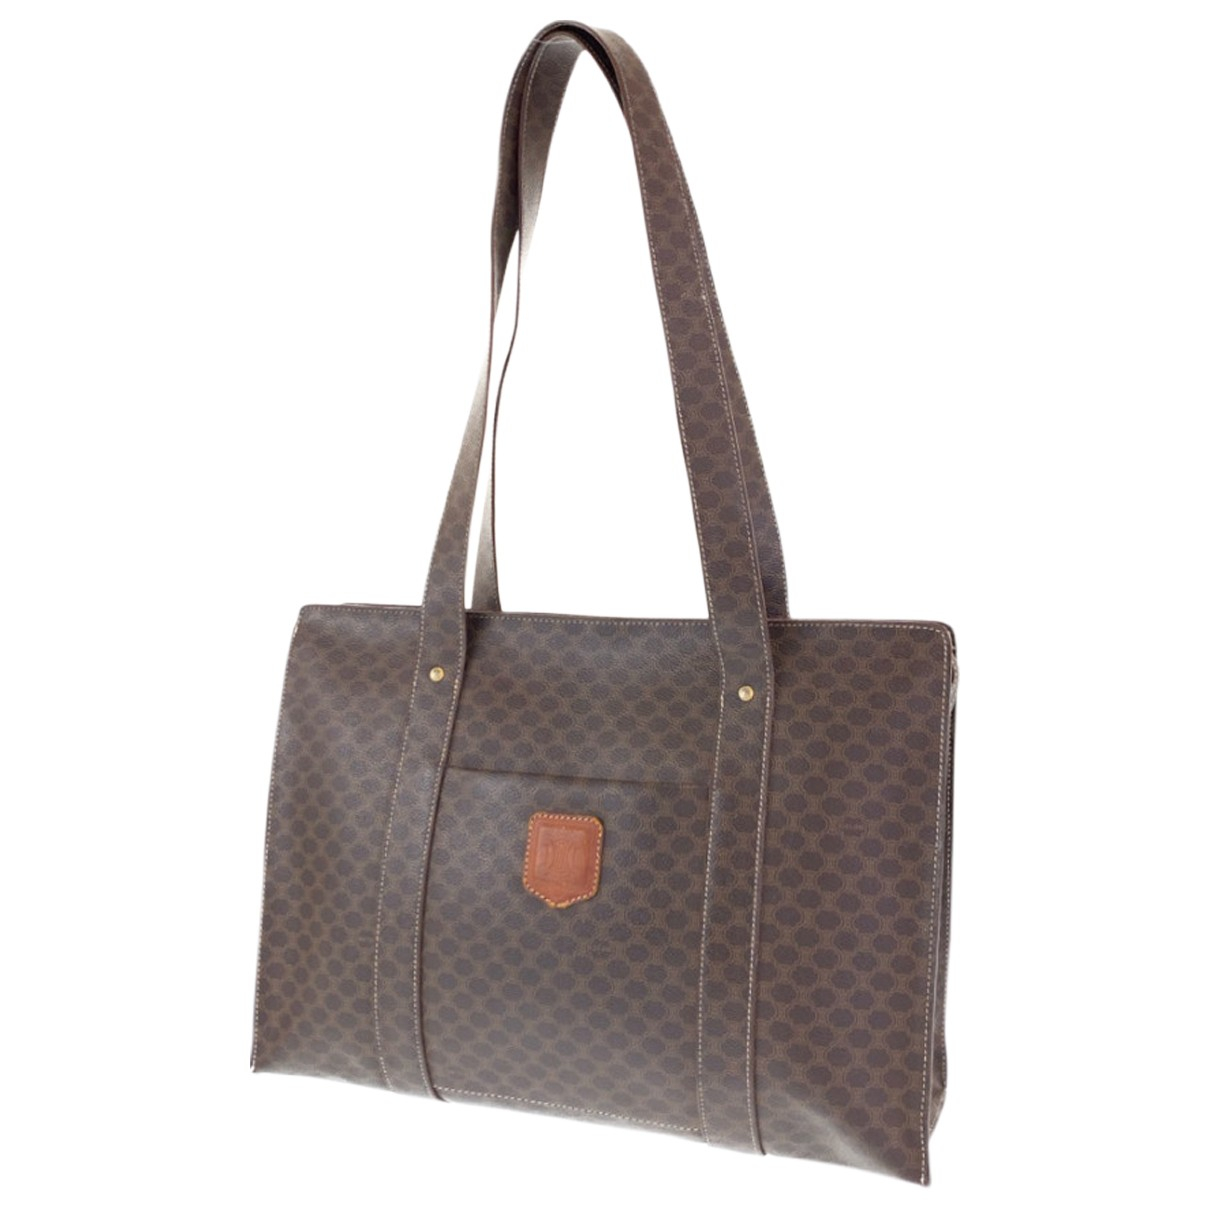 Celine N handbag for Women N